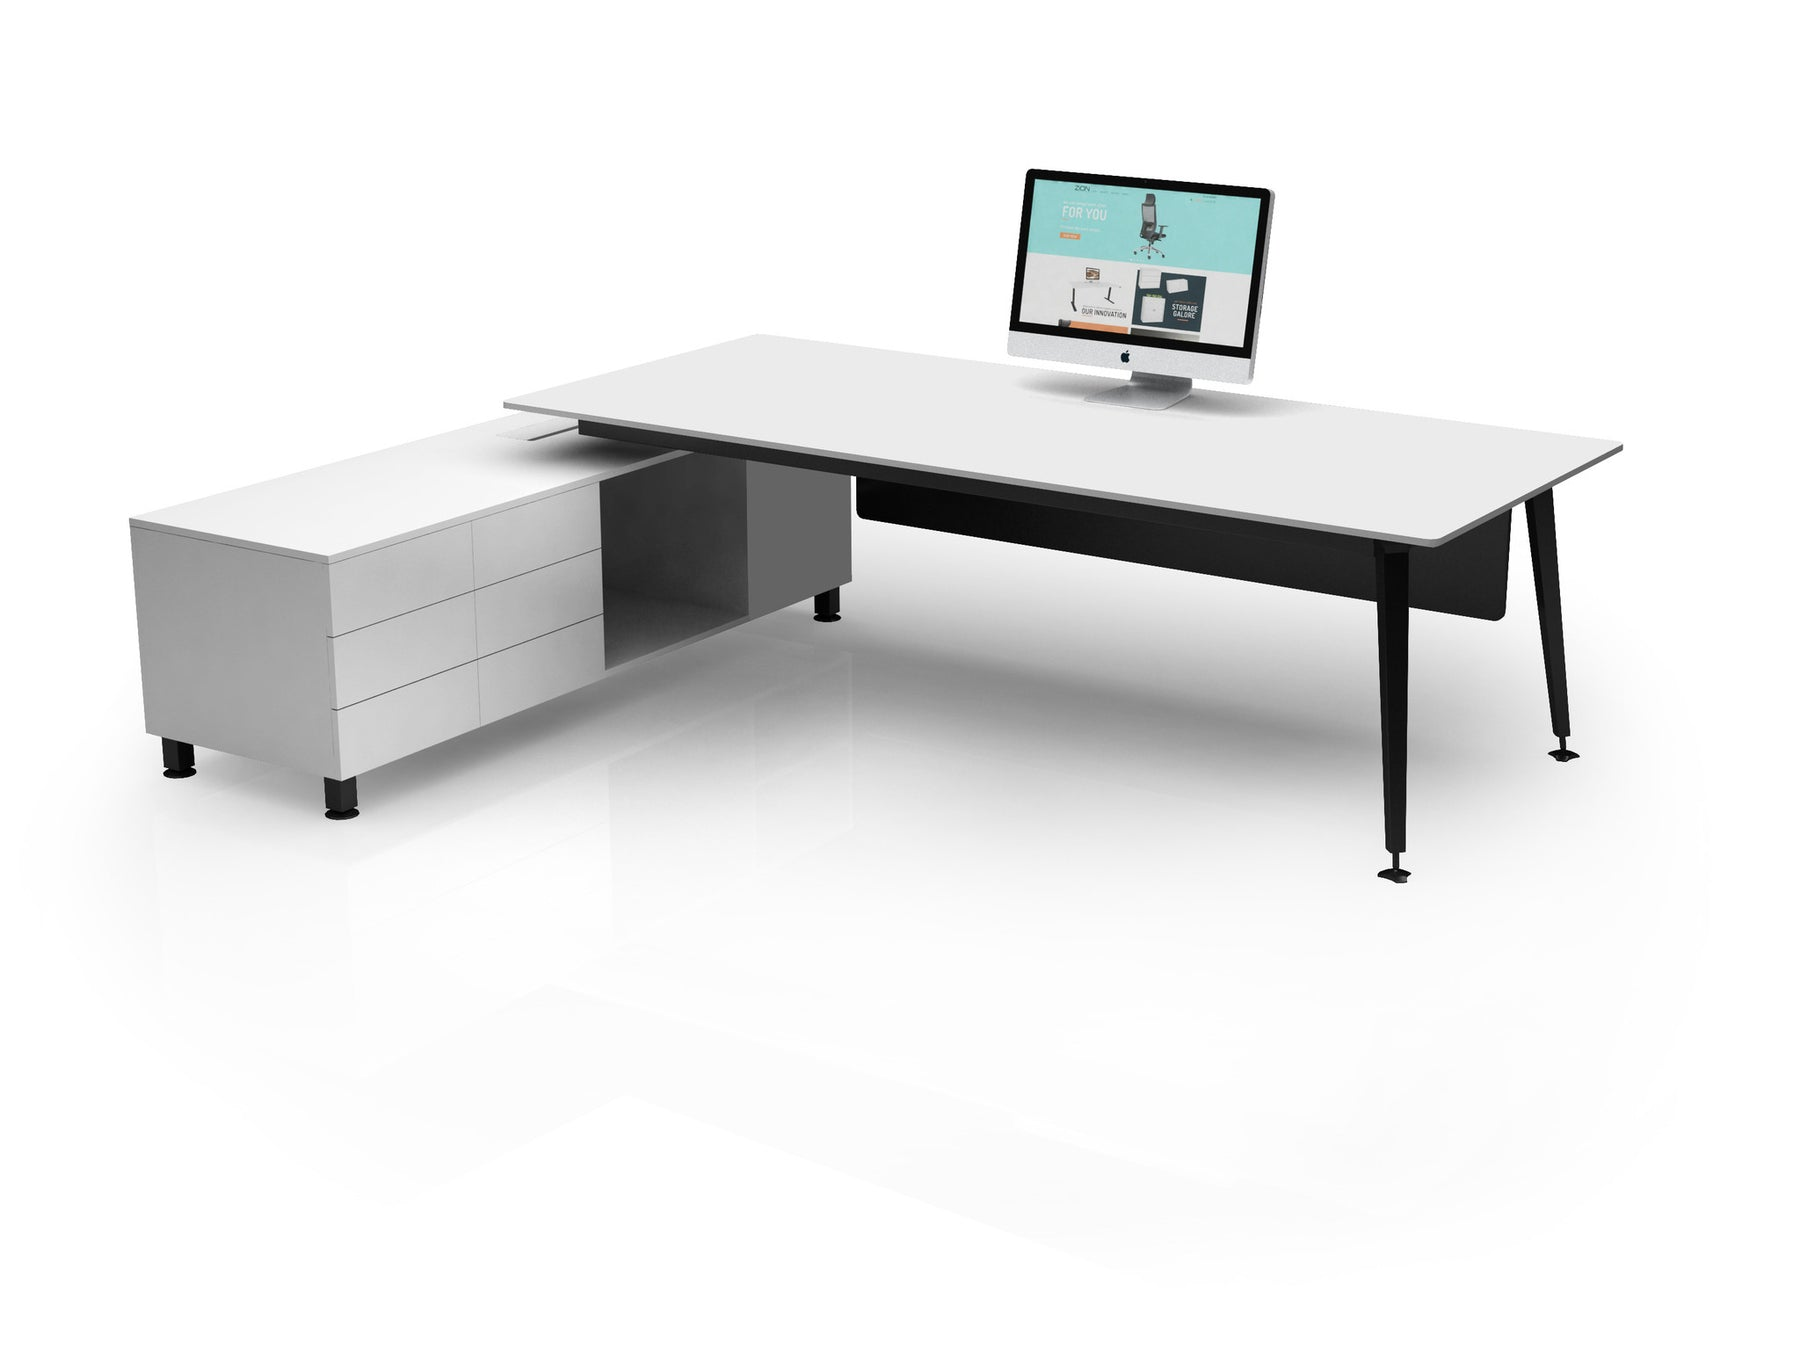 rta collections desks gry grey gray desk techni modern mobili storage with office